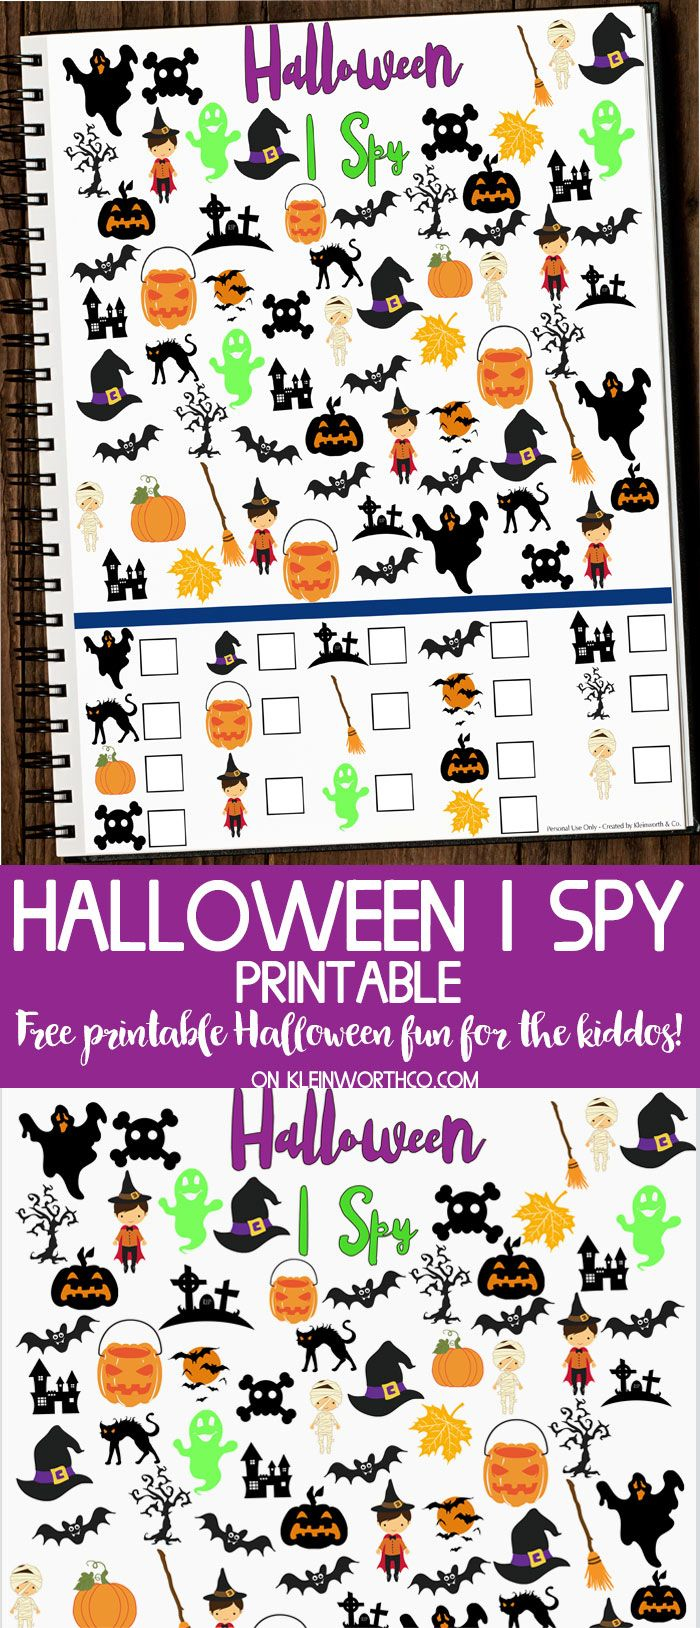 Free Halloween I Spy Printable - Fun Printable To Get The